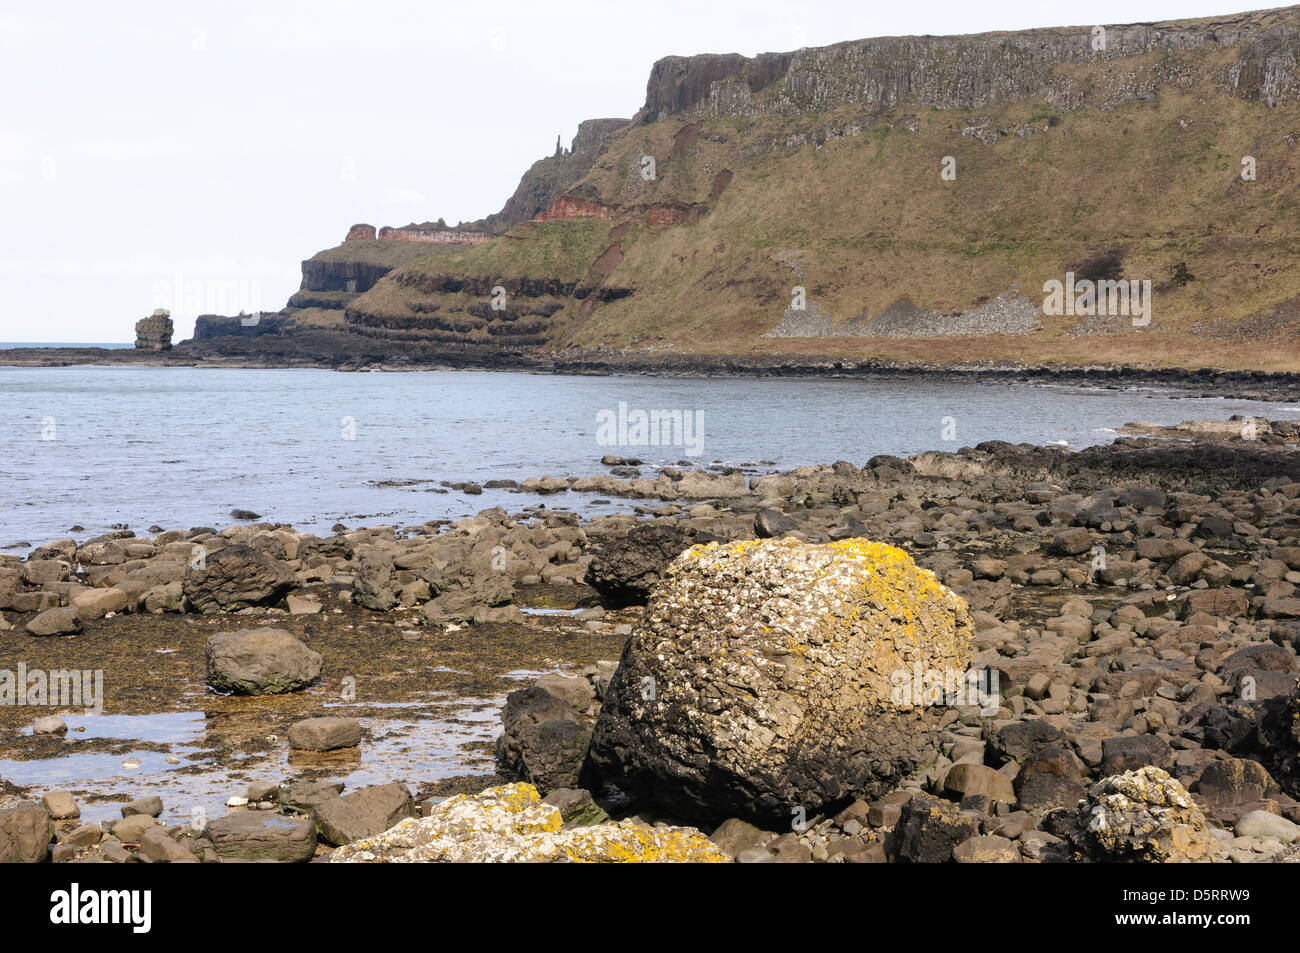 The Ampitheatre at the Giant's Causeway - Stock Image